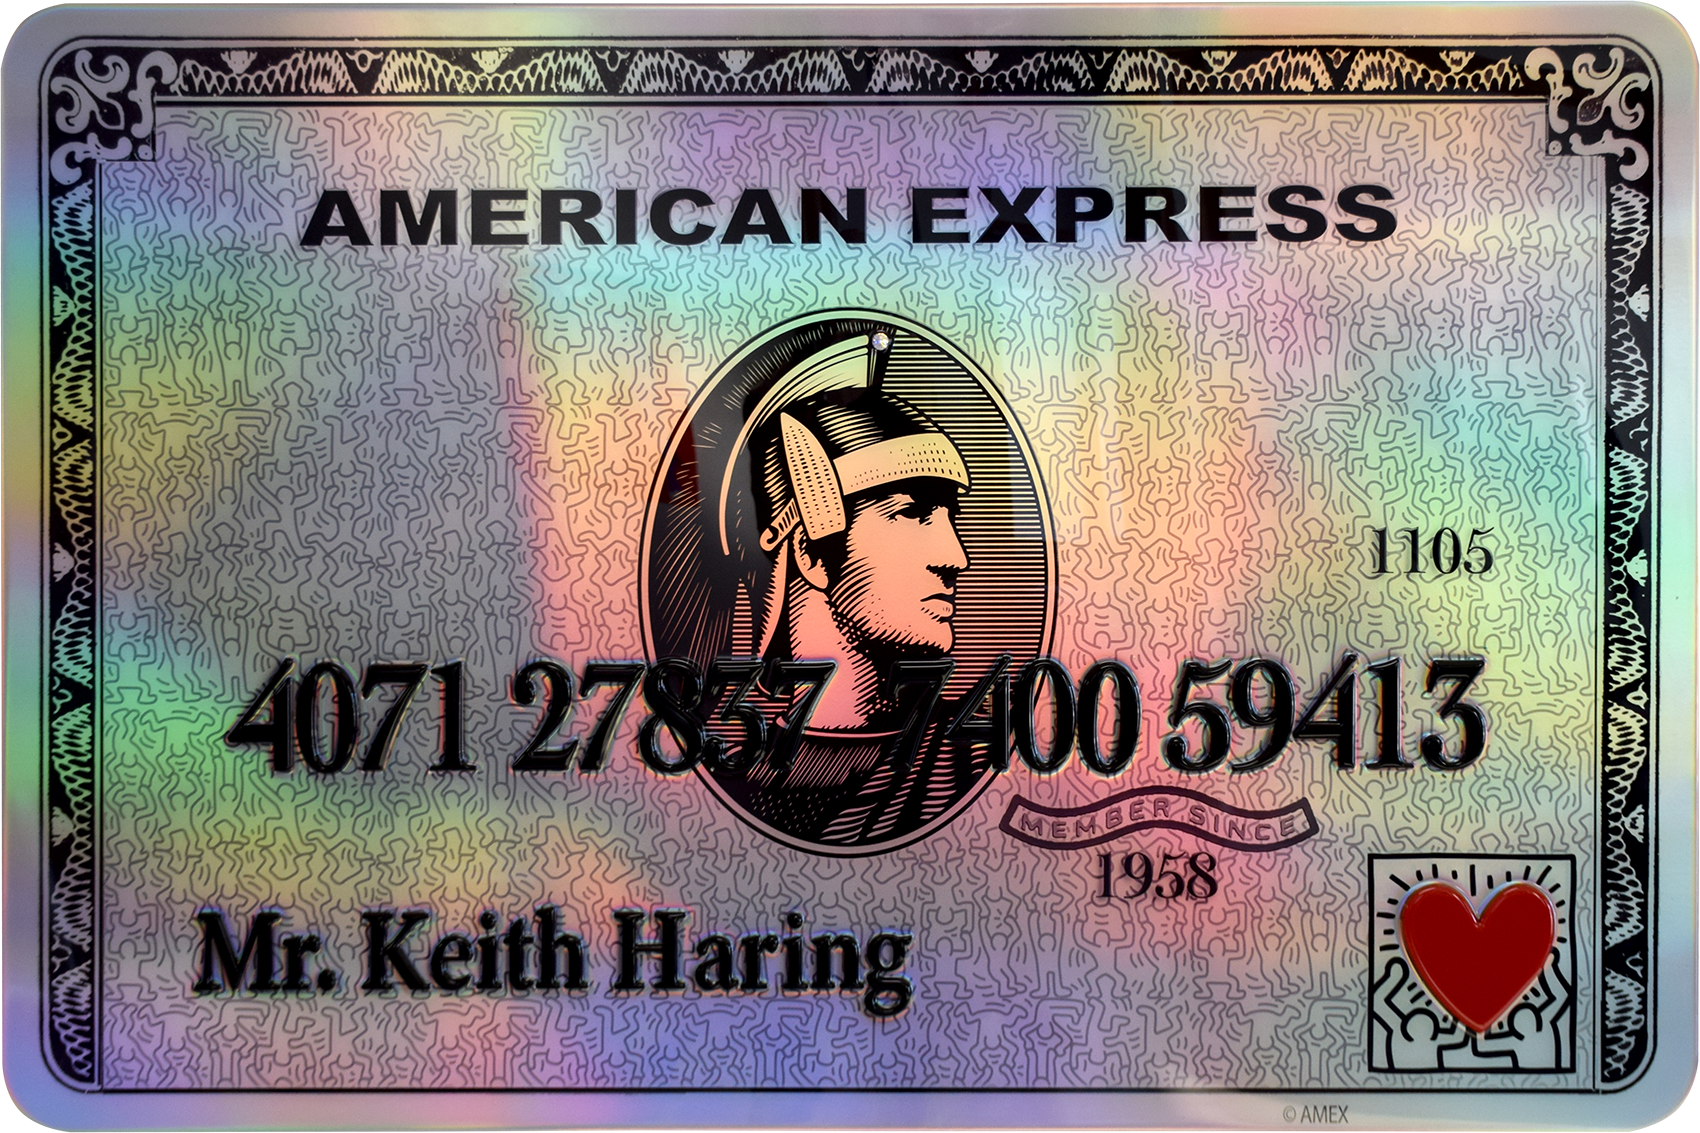 Diederik - AMEX (Mr. Keith Haring) , 4504-016-057